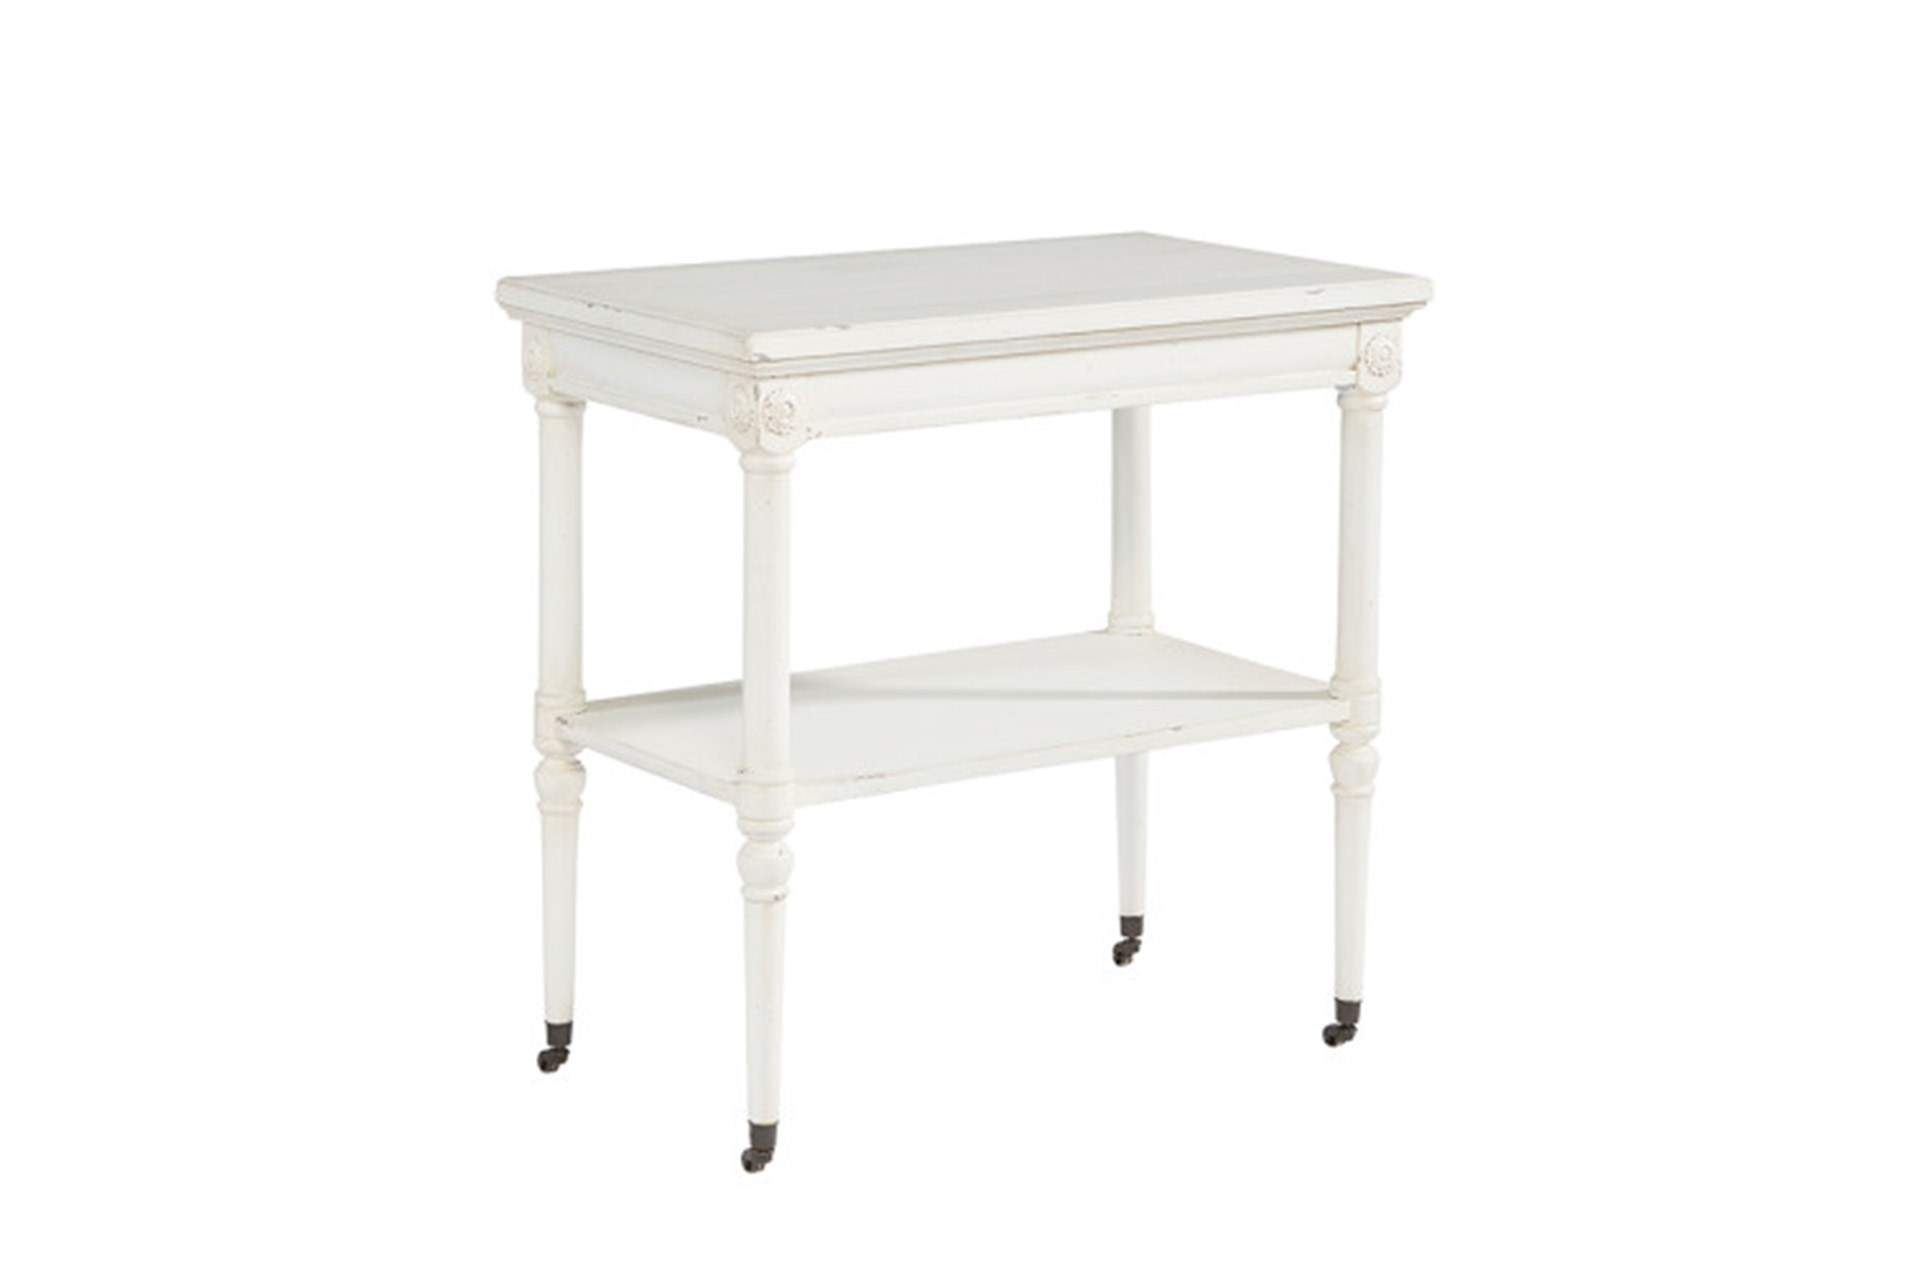 magnolia home petite rosette white accent table joanna gaines large qty has been successfully your cart black dining set dark wood occasional tables and chairs with built grill